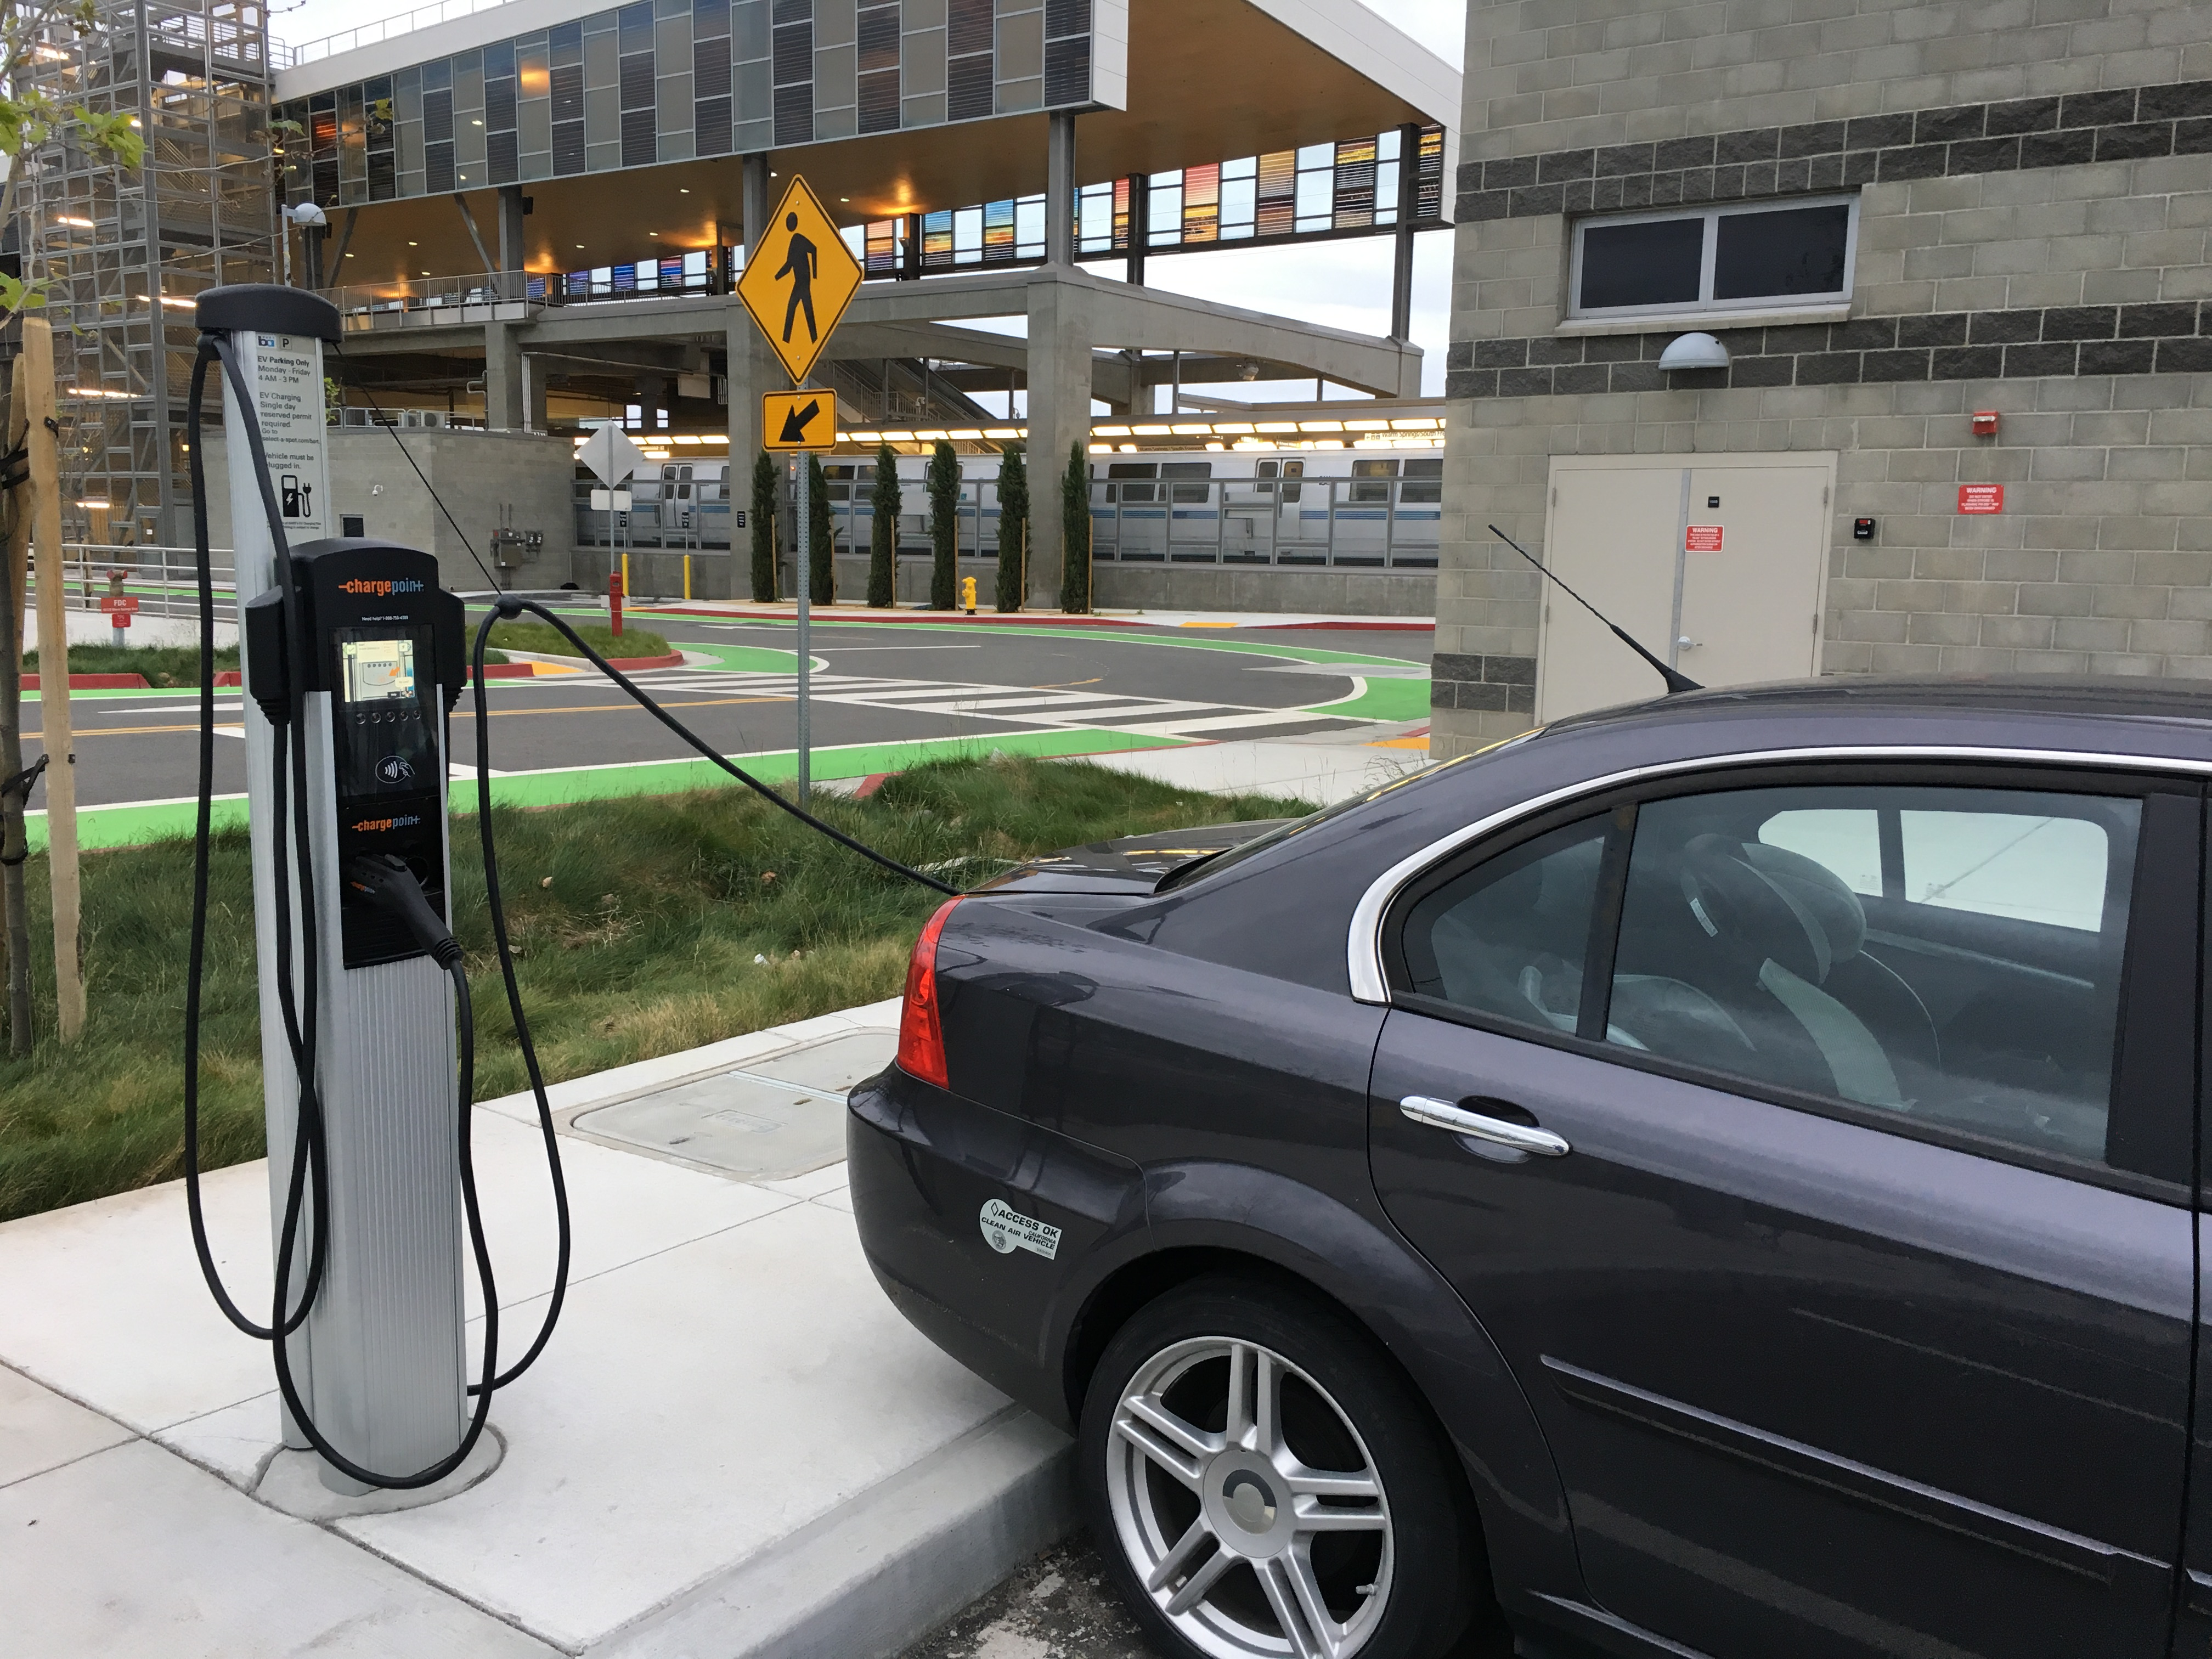 Ambitious Electric Vehicle Pilot Program Comes To Warm Springs Station